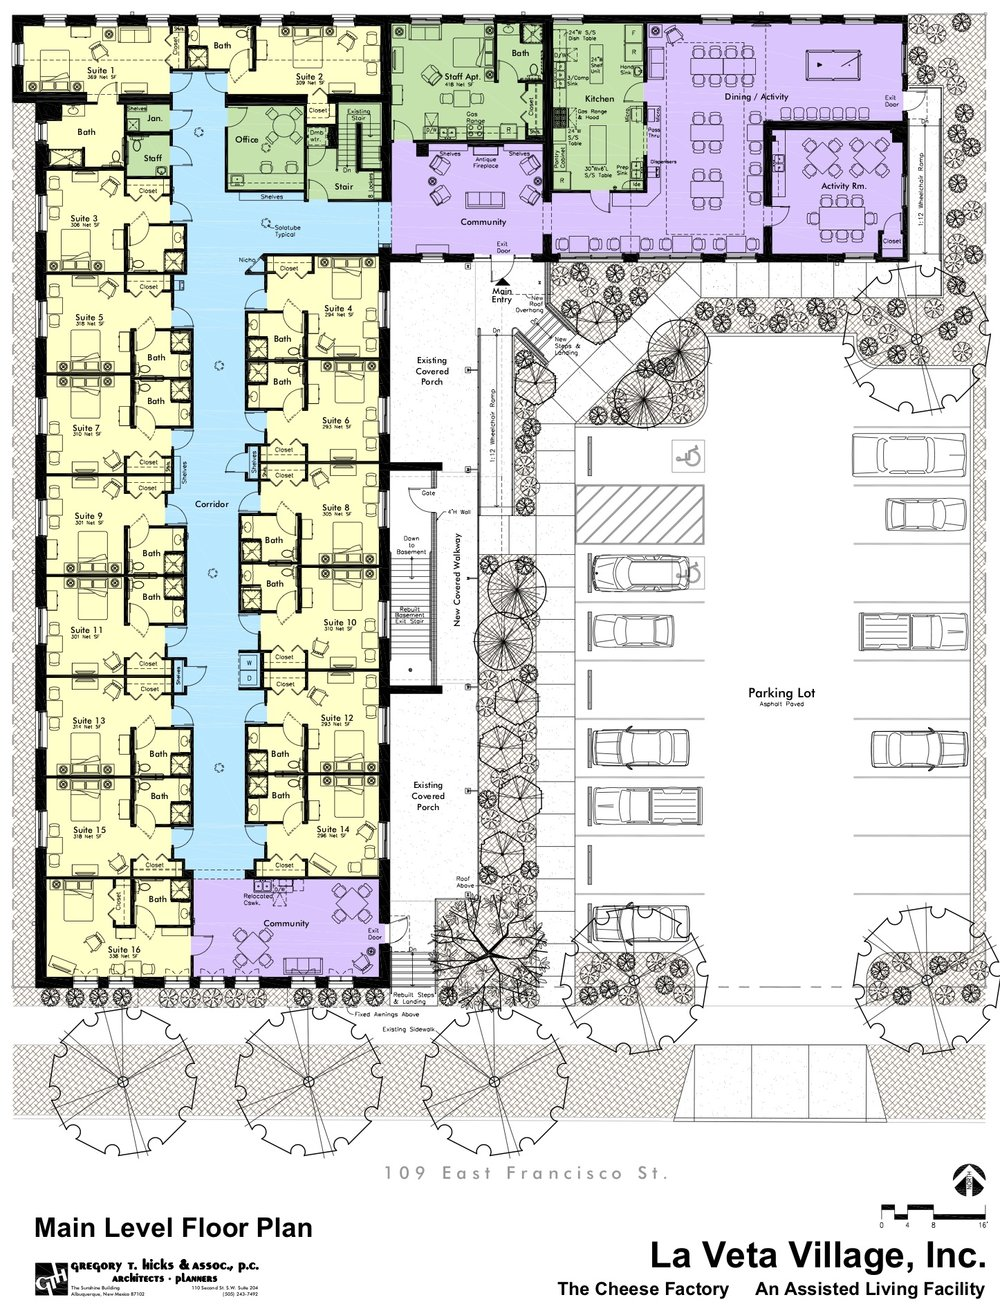 Floor Plans - Our floor plan includes 17 generously sized resident suites designed for up to 18 residents. The main entryway will have a gas fireplace and a comfortable seating area welcoming residents and guests. There will be a large dining hall with oversized south facing windows providing distant views of the Spanish Peaks. Our kitchen will serve three, well-balanced daily meals as well as snacks. The recreation room/music room will be set up for light physical activities when inclement weather prohibits being outdoors. The south facing craft room will be a great space for art projects, handwork, table games and this room can also be used for private gatherings and party functions, and a daily community gathering place for friends and families. The sunroom is small and cozy offering a pleasant, warm environment for reading, visiting, relaxing and it is set up with a self-service cantina for coffee, tea, soft drinks, snacks and ice cream.